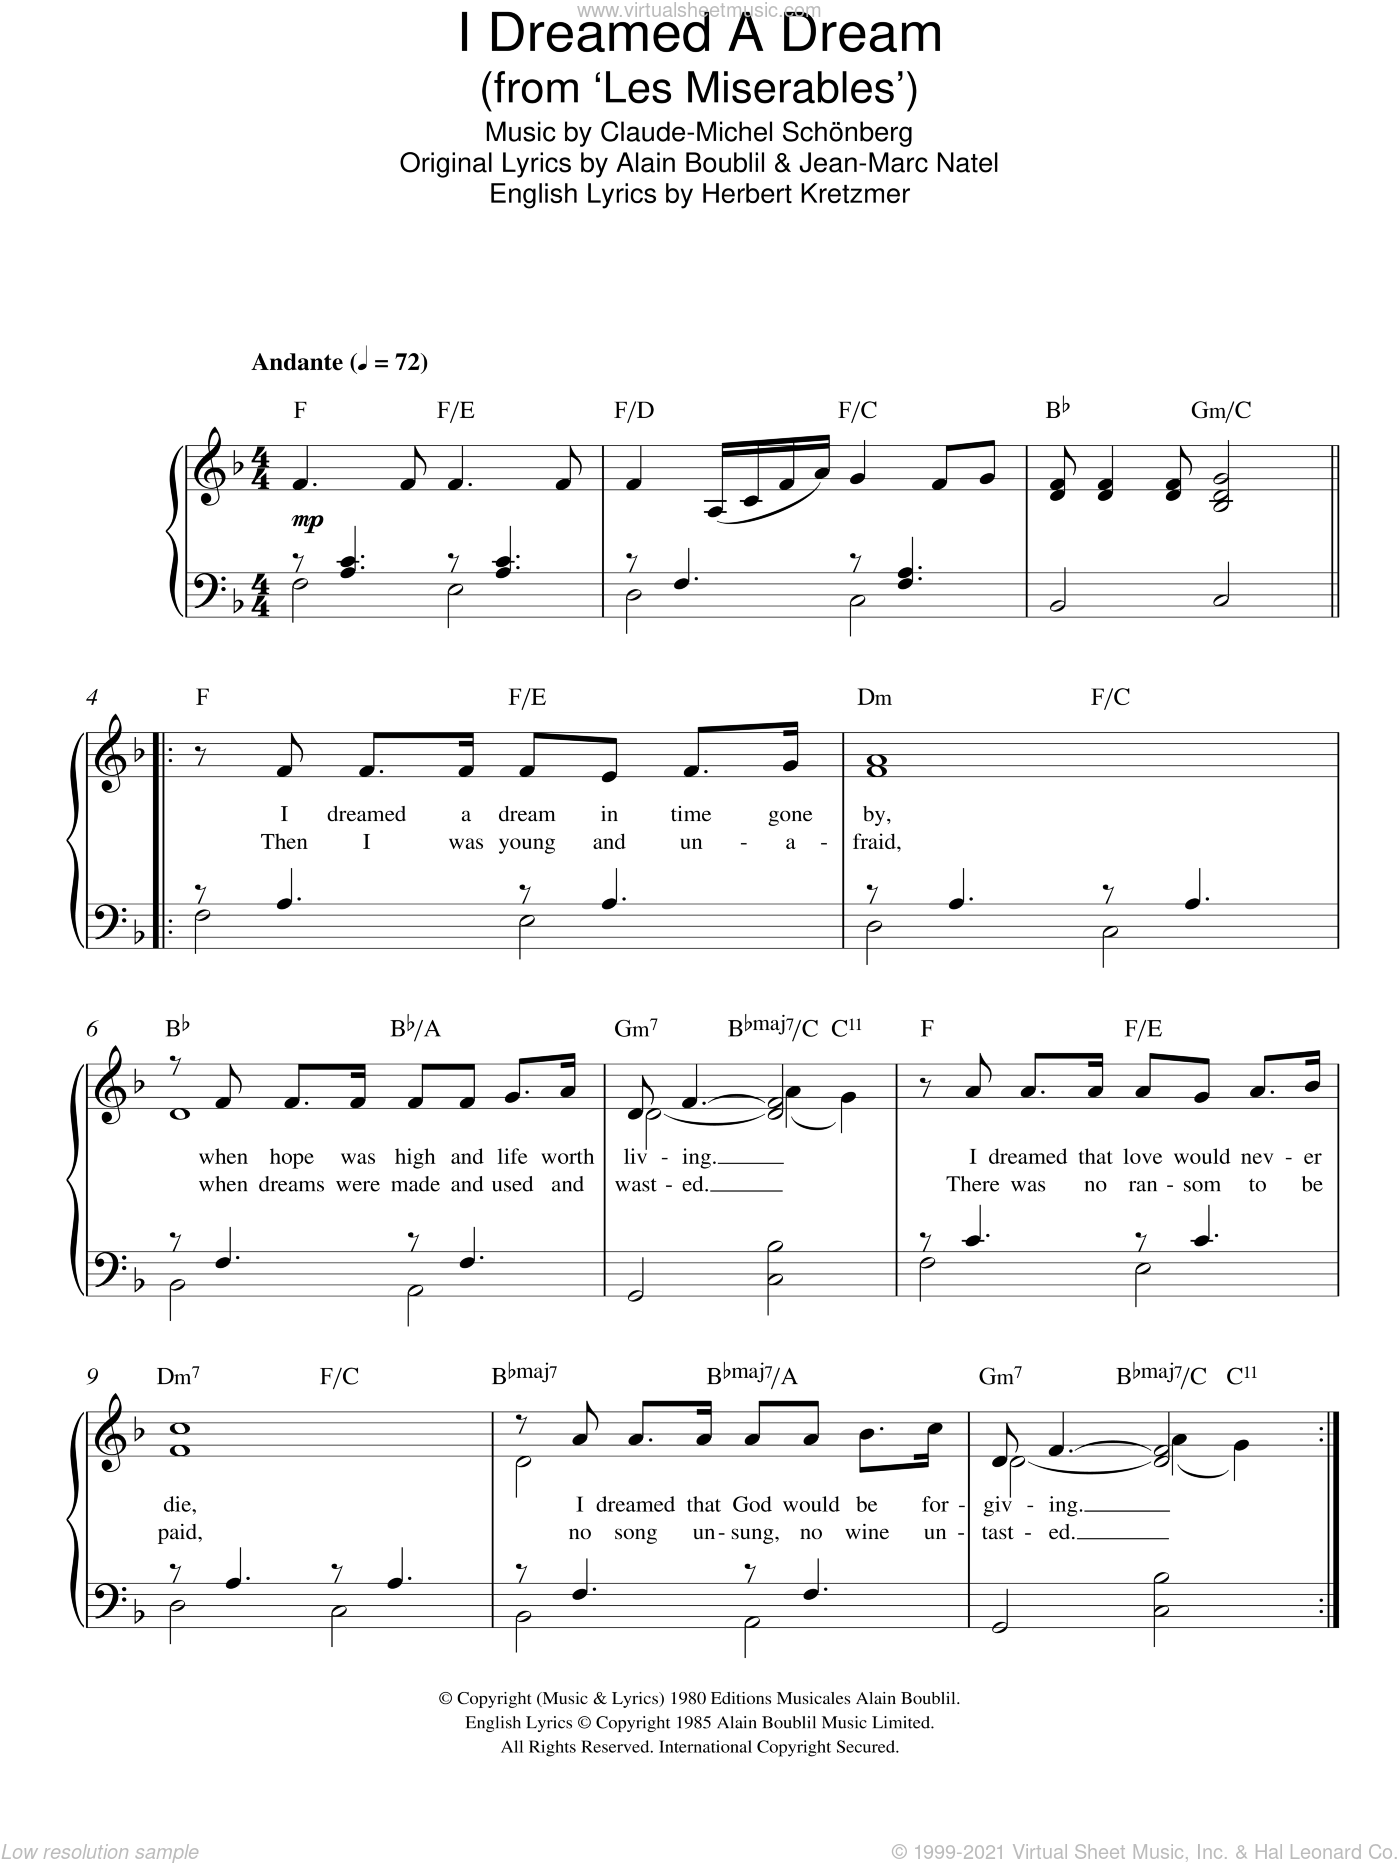 I Dreamed A Dream (from Les Miserables) sheet music for piano solo by Claude-Michel Schonberg, Alain Boublil, Herbert Kretzmer and Jean-Marc Natel, easy skill level